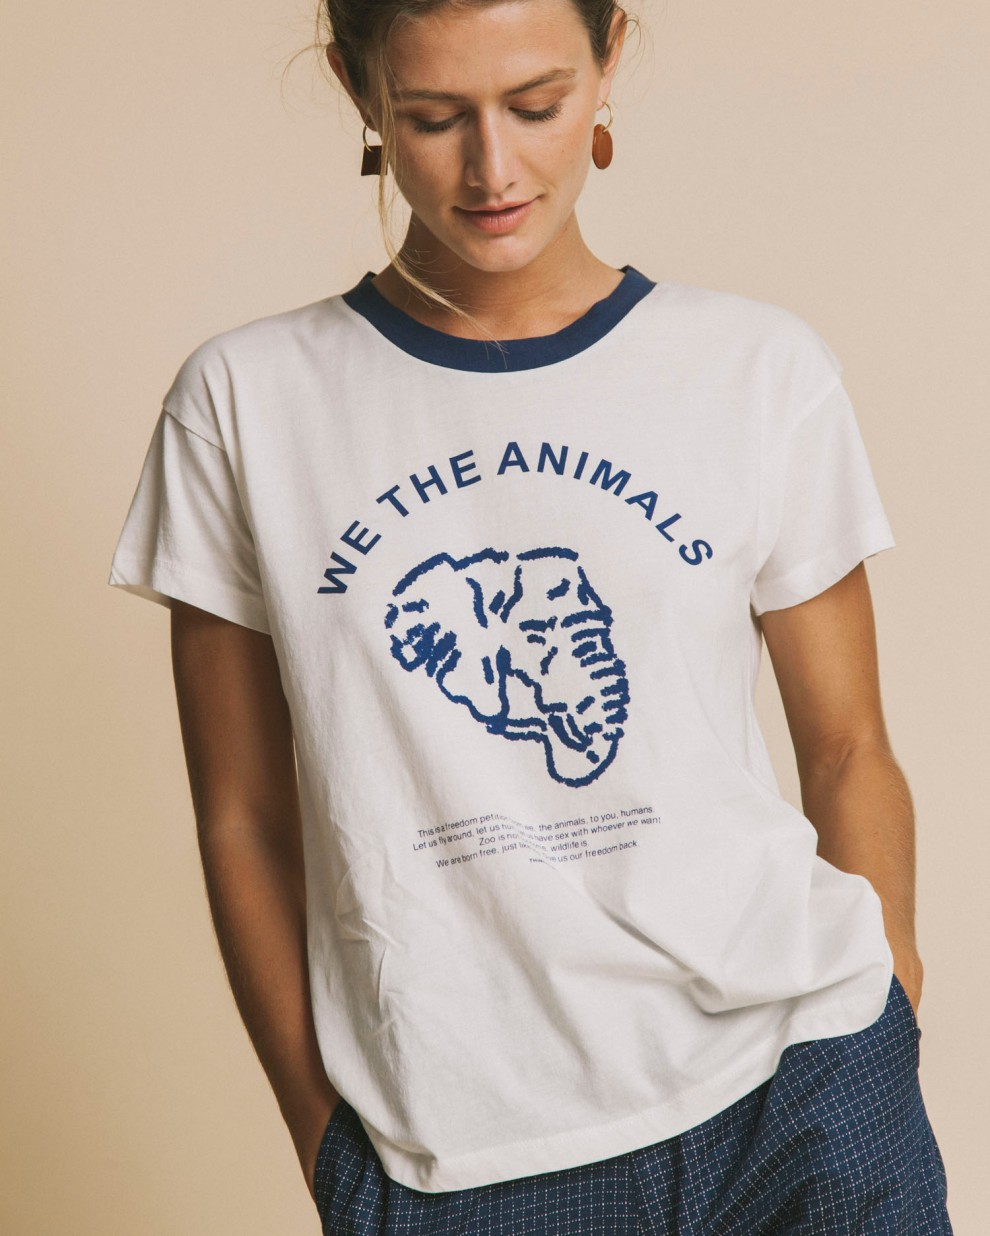 We the animals t-shirt